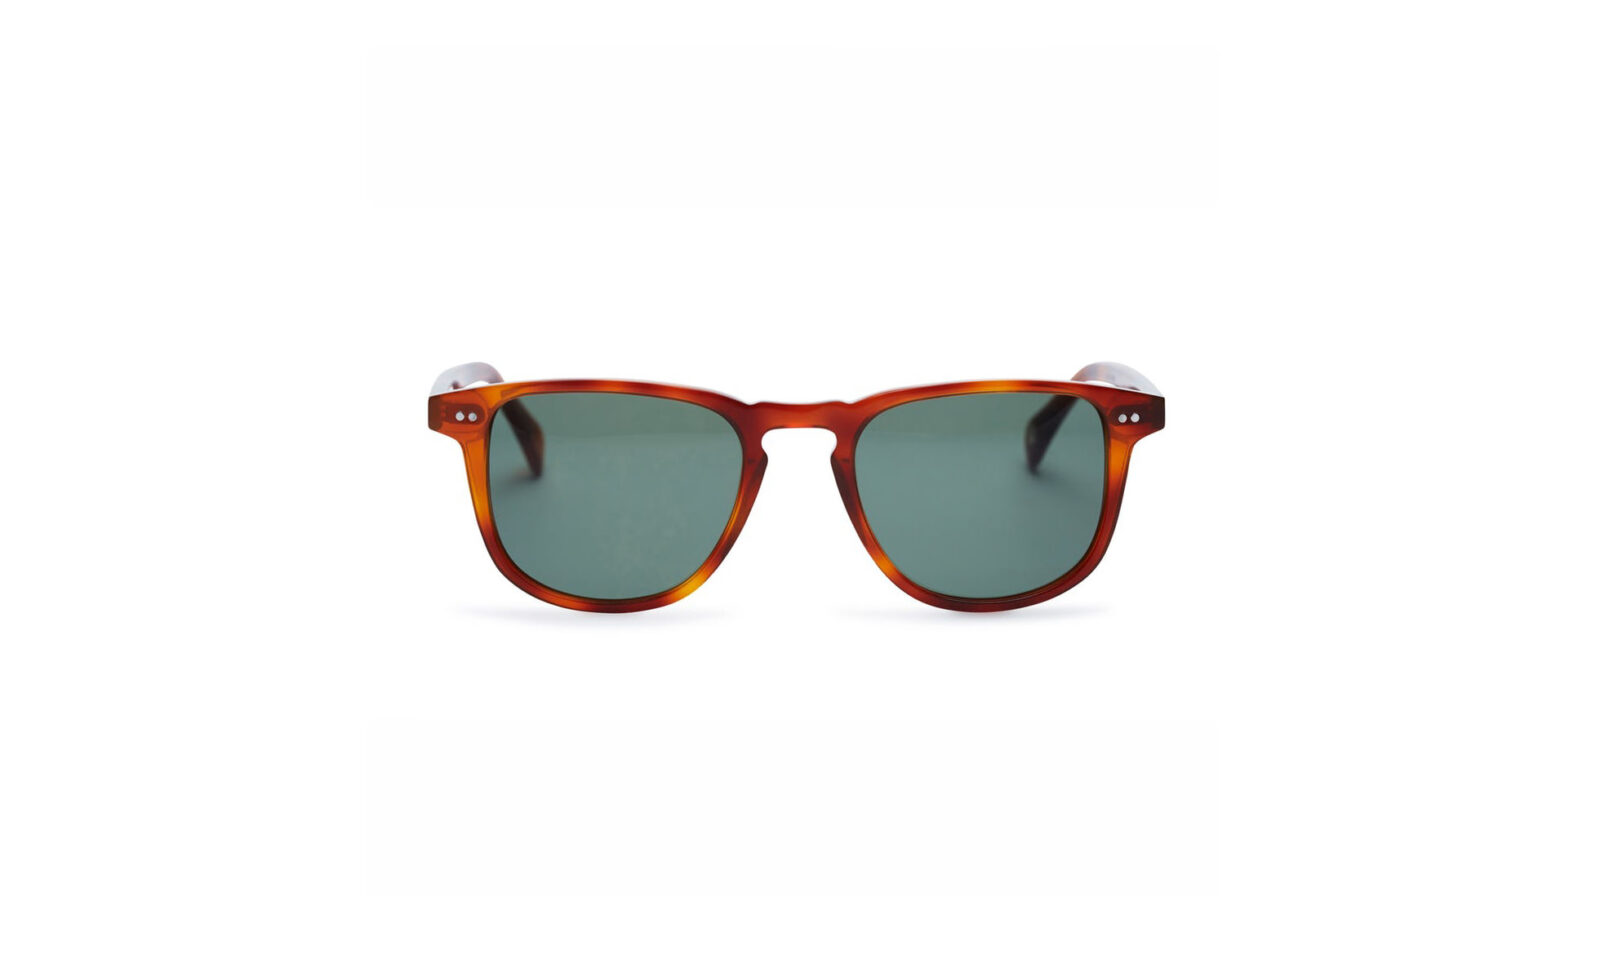 Pacifico Optical Blair Sunglasses 1 1600x960 - Pacifico Optical Blair Sunglasses